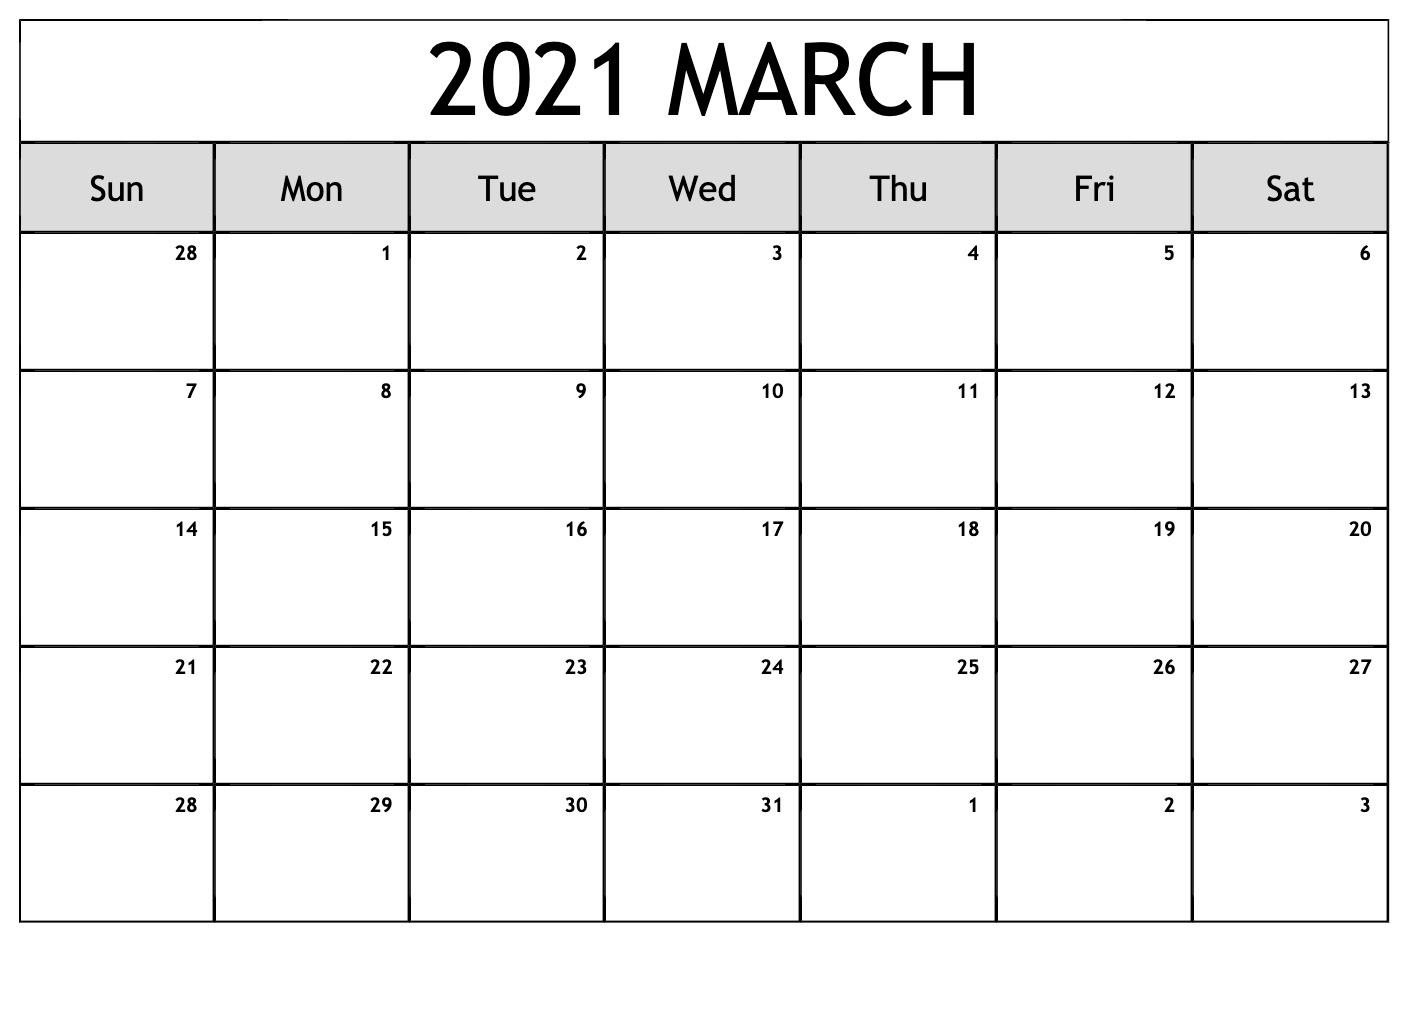 March 2021 Calendar Template Monday Start